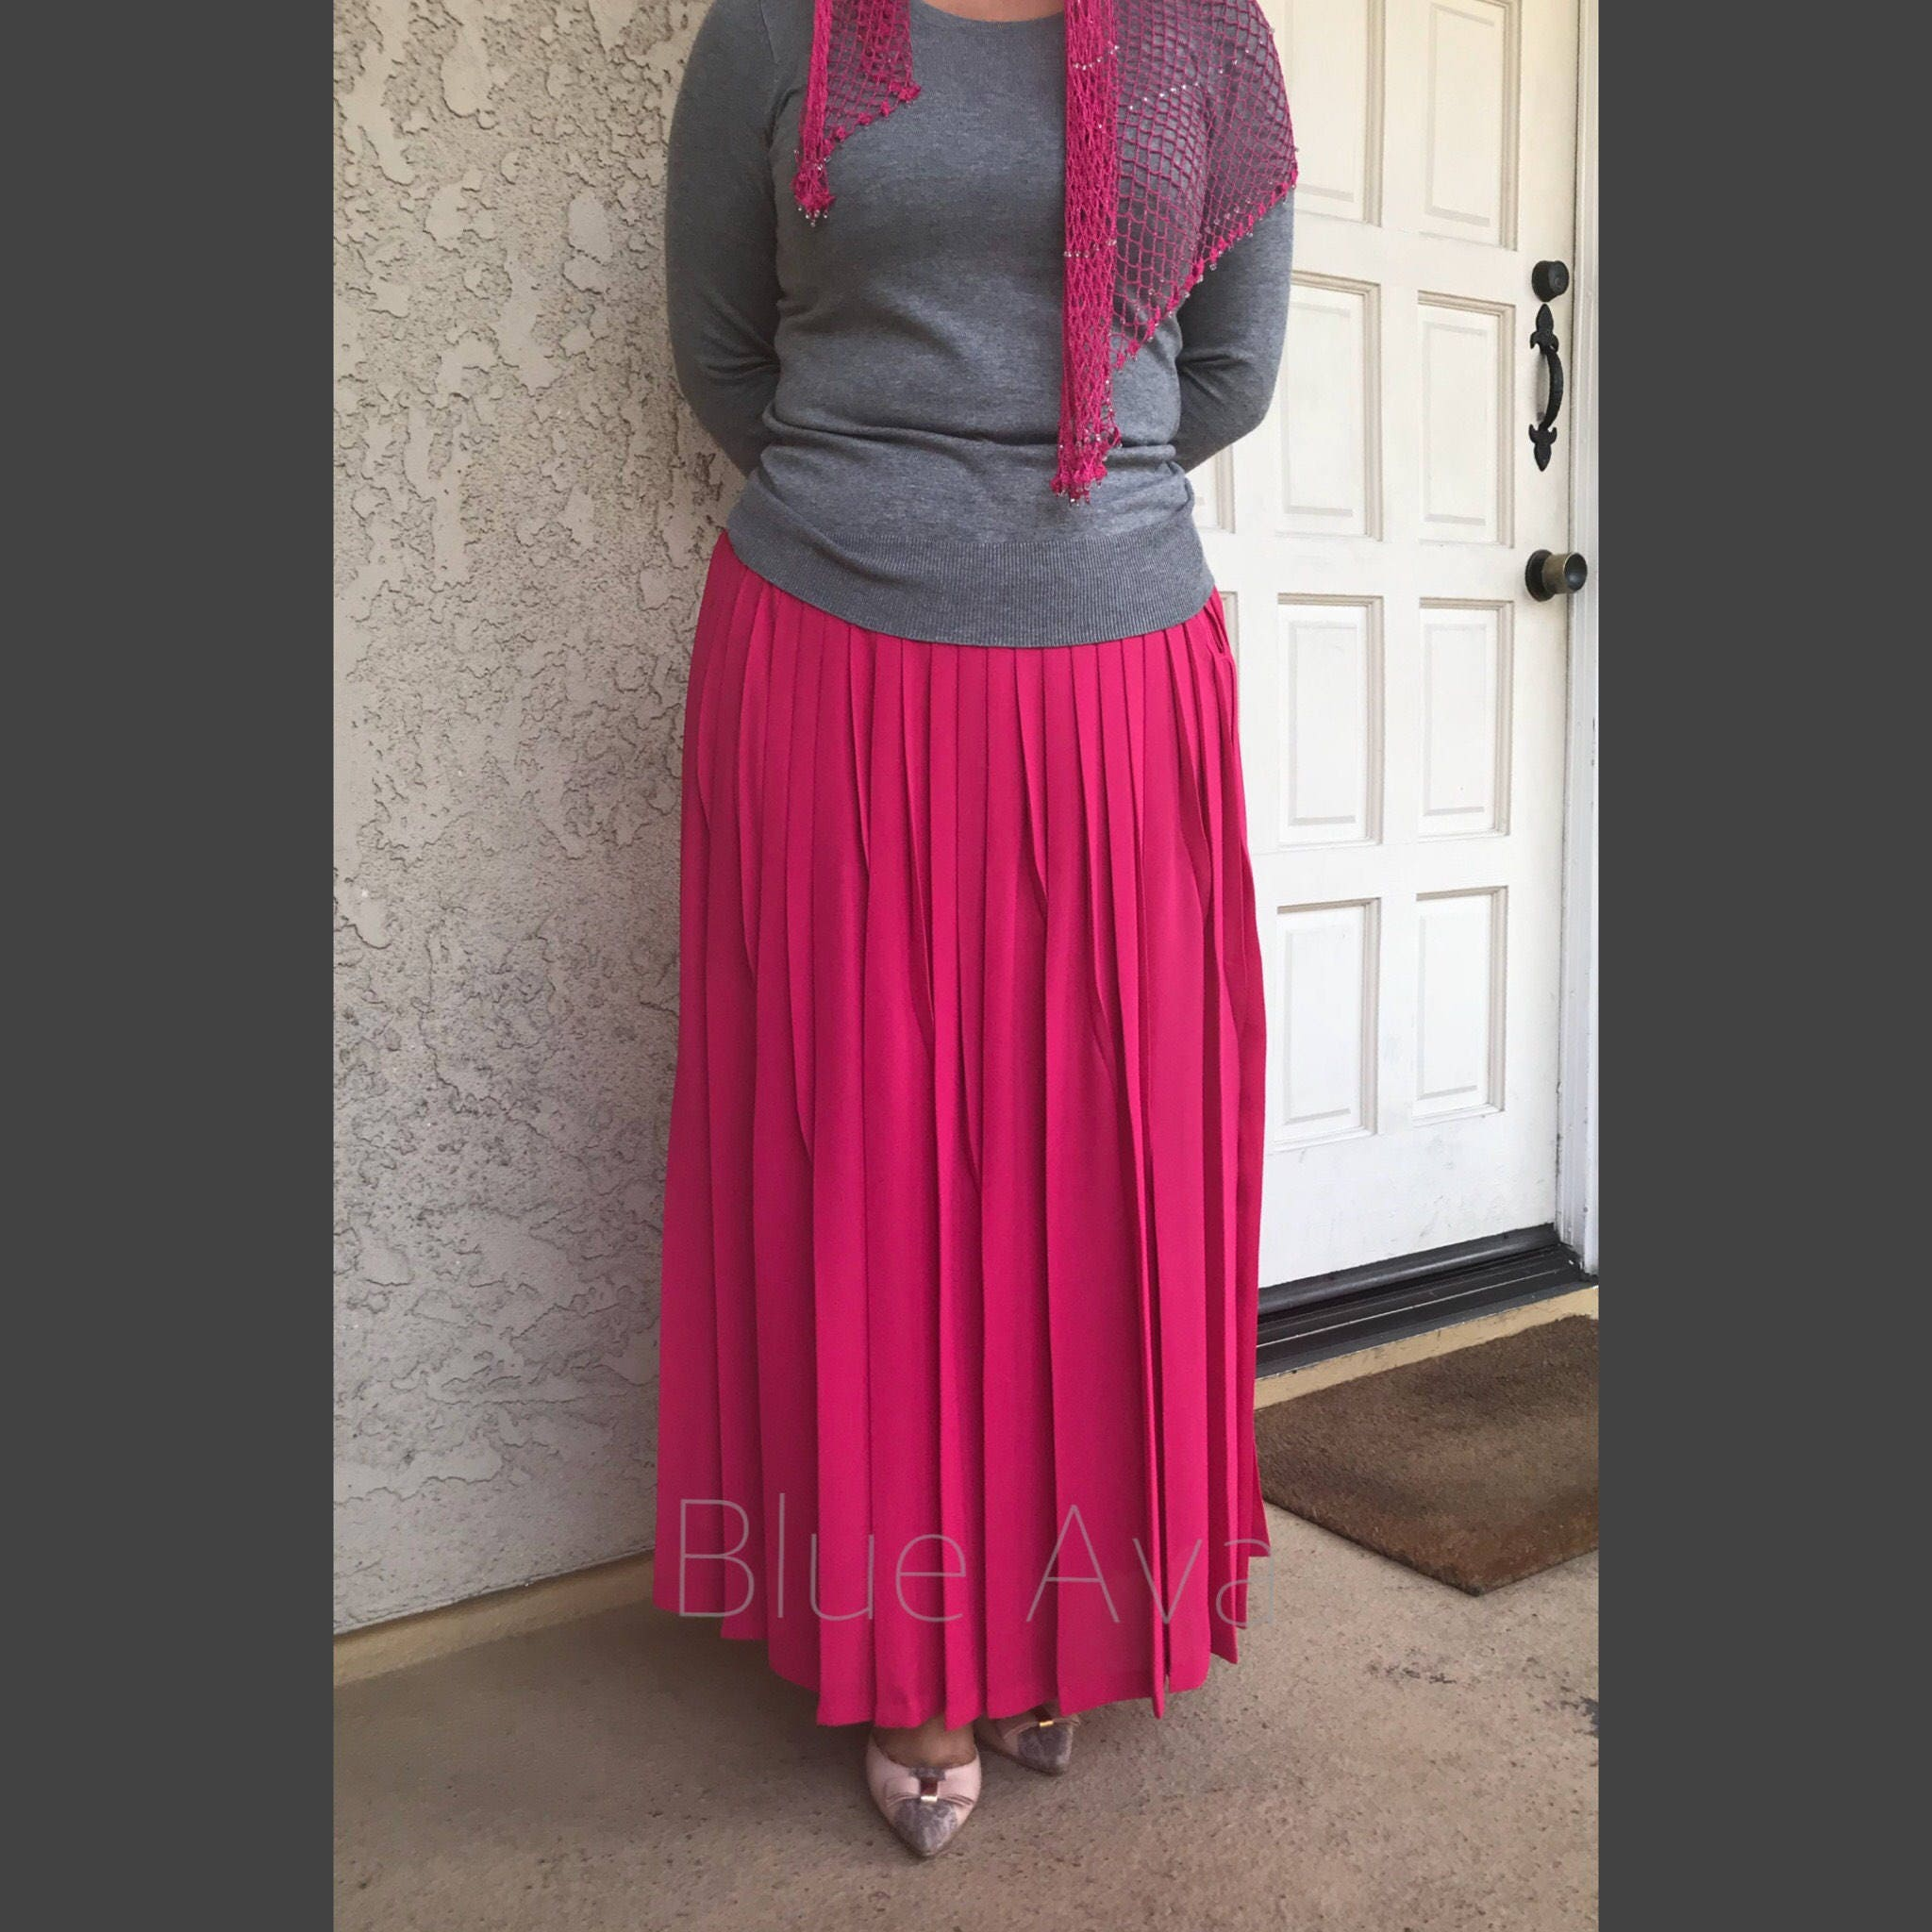 5bff0773702392 Pleated Maxi Skirt Shopstyle – DACC